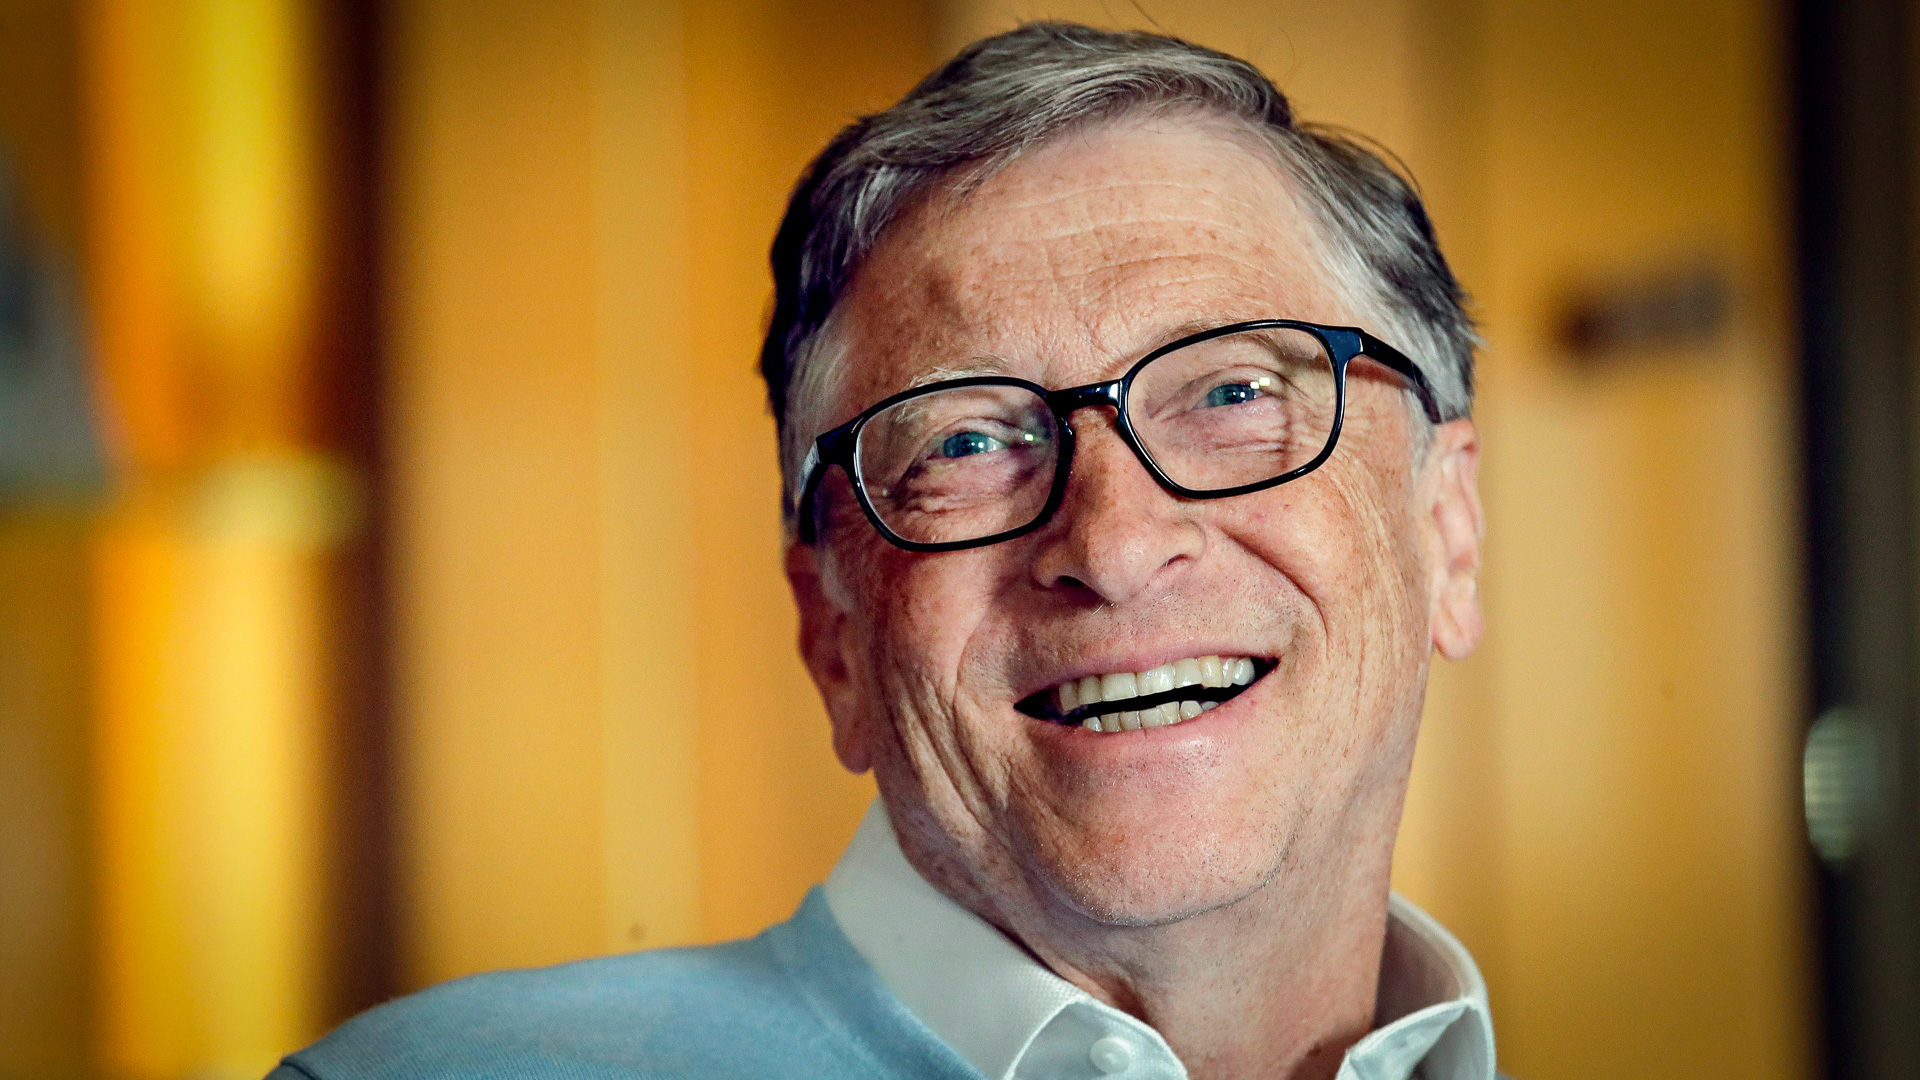 Mandatory Credit: Photo by Elaine Thompson/AP/REX/Shutterstock (10103057b) In this, Bill Gates smiles while being interviewed in Kirkland, Wash. Bill and Melinda Gates are pushing back against a new wave of criticism about whether billionaire philanthropy is a force for good. The couple, whose foundation has the largest endowment in the world, said they're not fazed by recent blowback against wealthy giving, including viral moments at the World Economic Forum and the shifting political conversation about taxes and socialism Bill Gates Philanthropy Criticism, Kirkland, USA - 31 Jan 2019